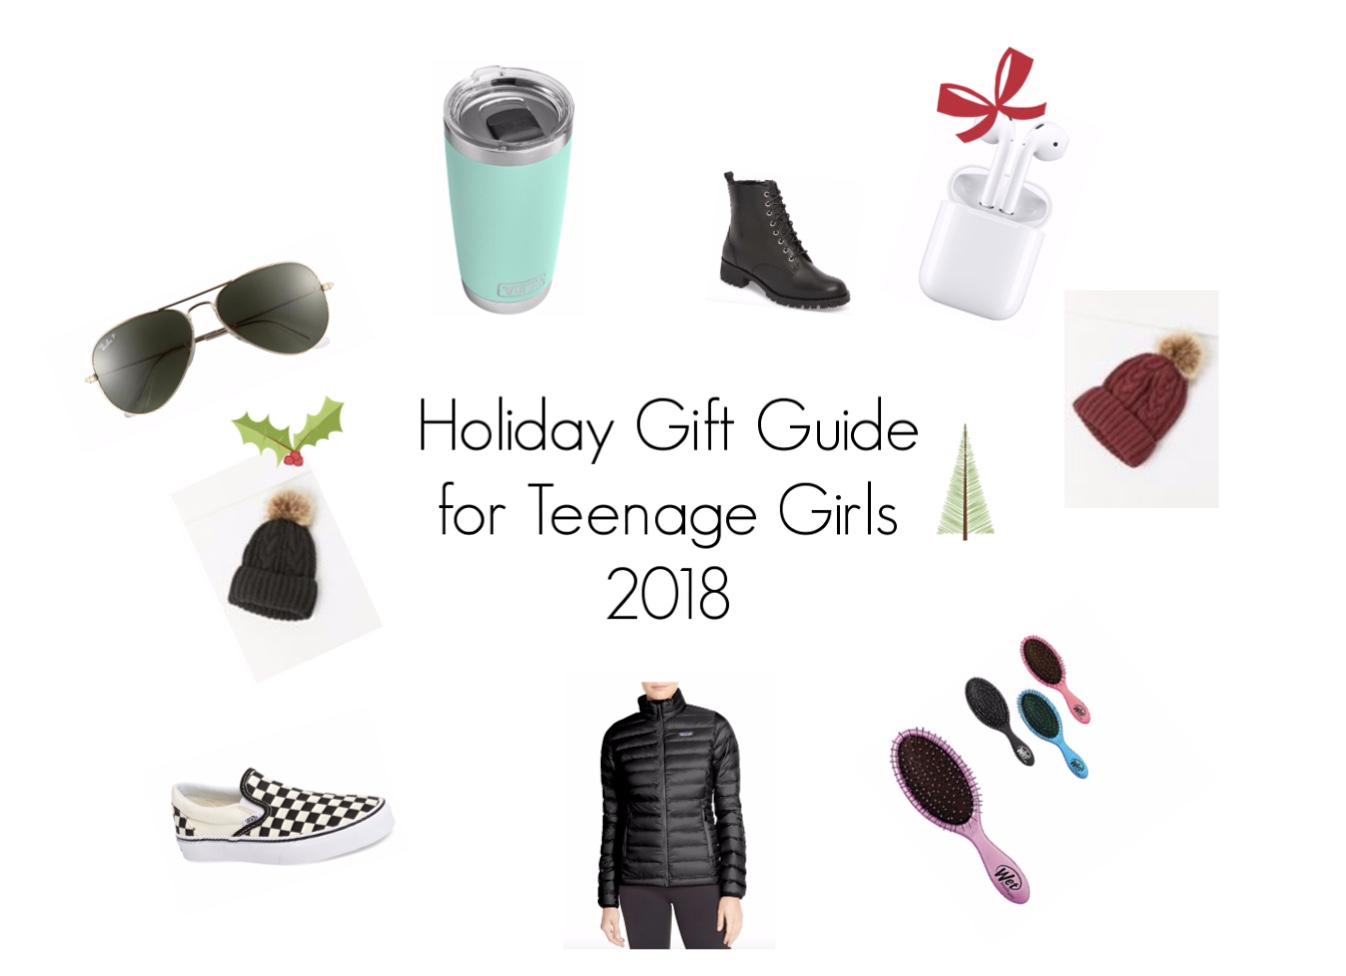 Holiday Gift Guide for Teenage Girls 2018